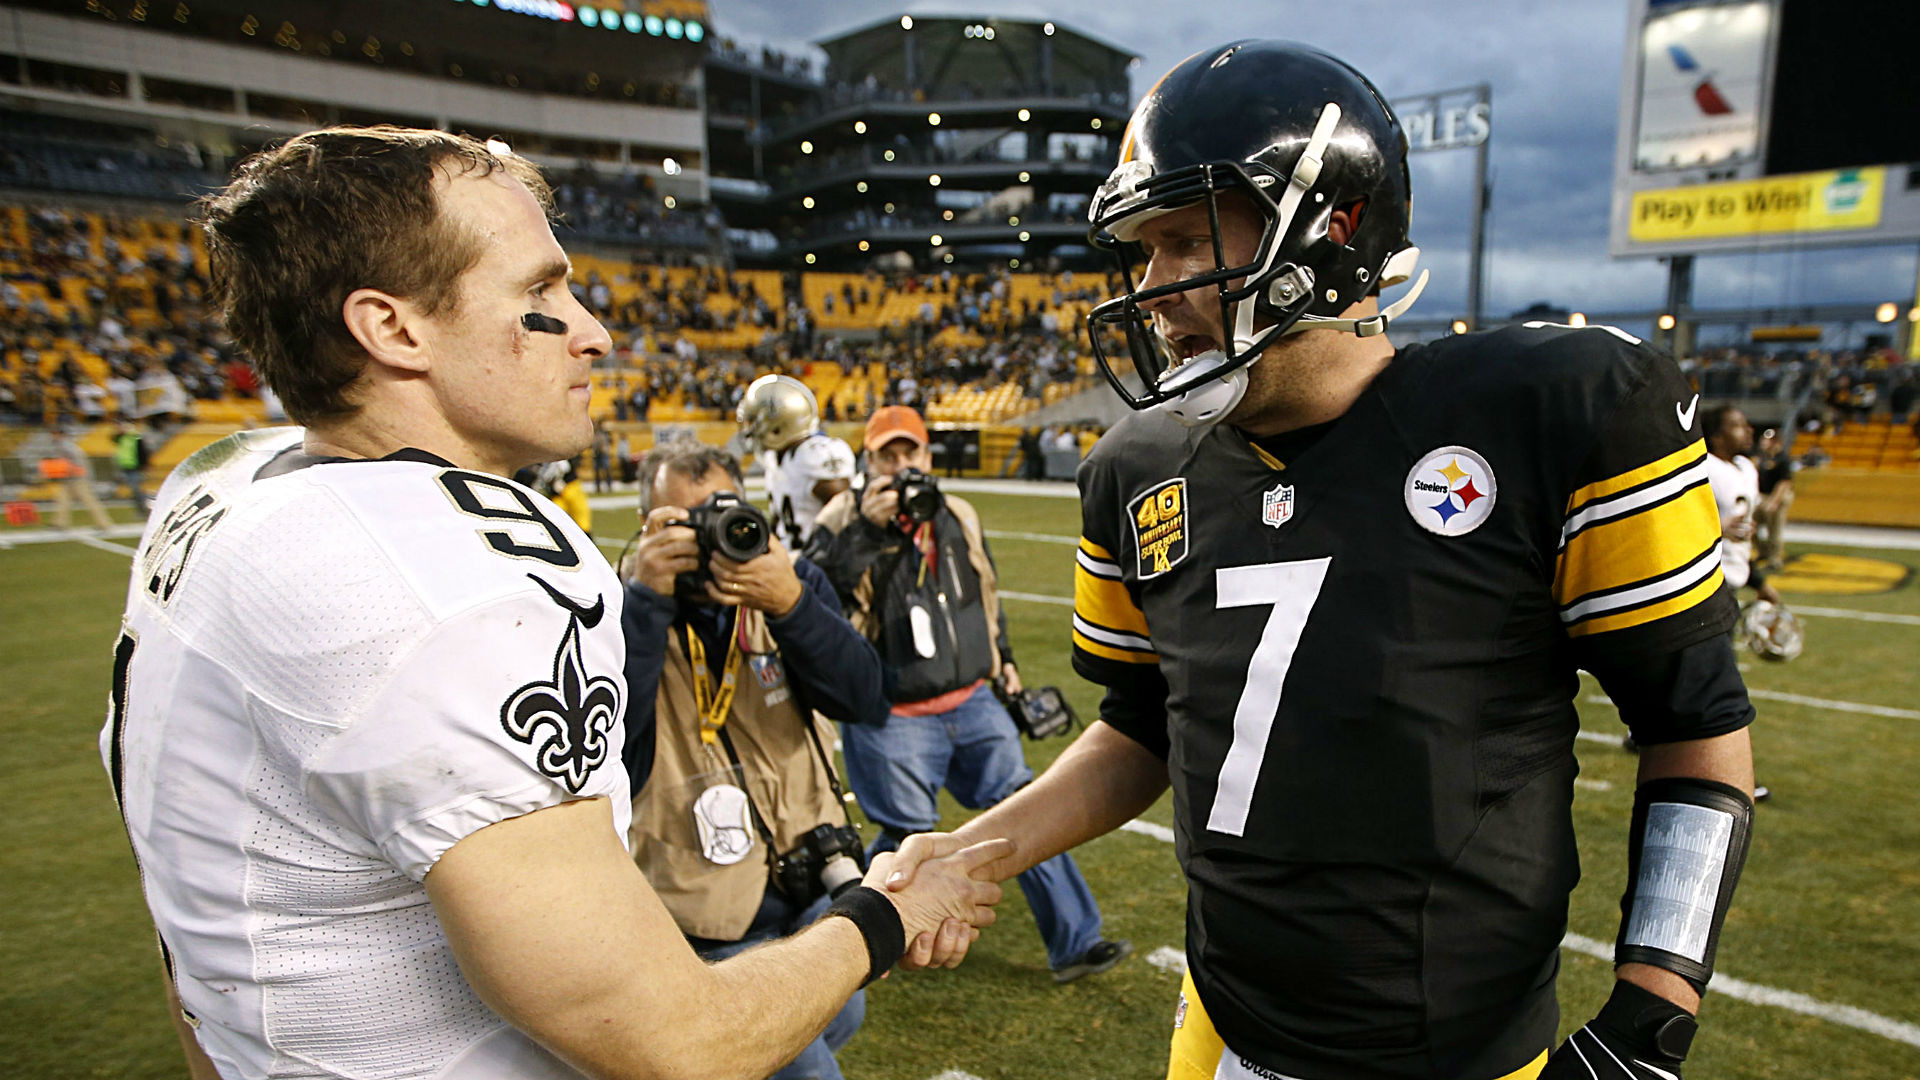 Drew Brees to replace Ben Roethlisberger in Pro Bowl | NFL | Sporting News